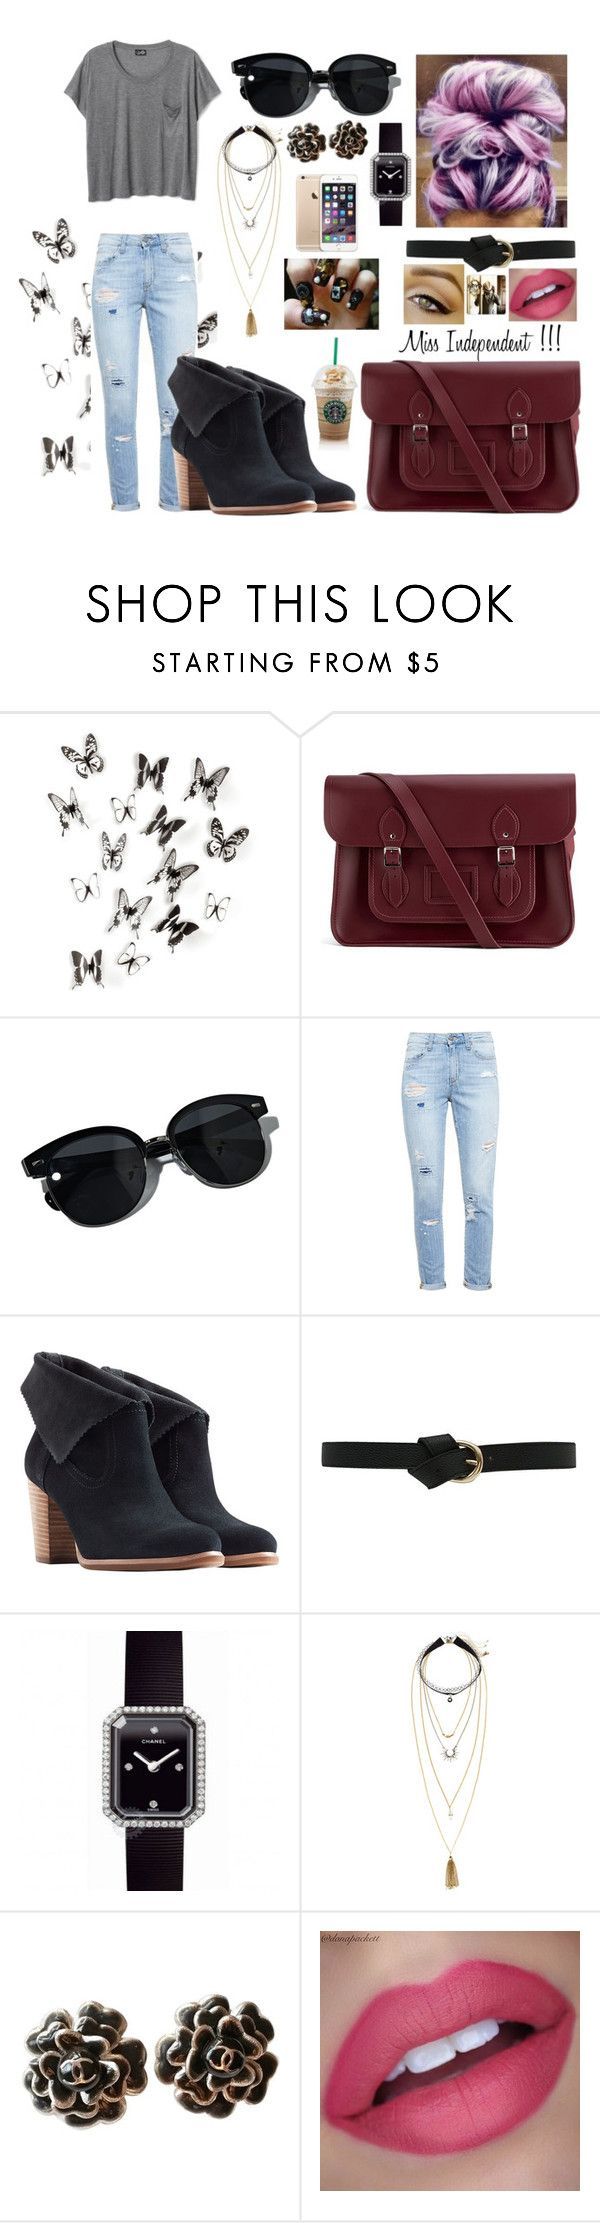 """""""Miss Independent !!!"""" by jade-vieira ❤ liked on Polyvore featuring Umbra, The Cambridge Satchel Company, Oliver Peoples, Paige Denim, UGG Australia, Chanel, H&M and CO"""